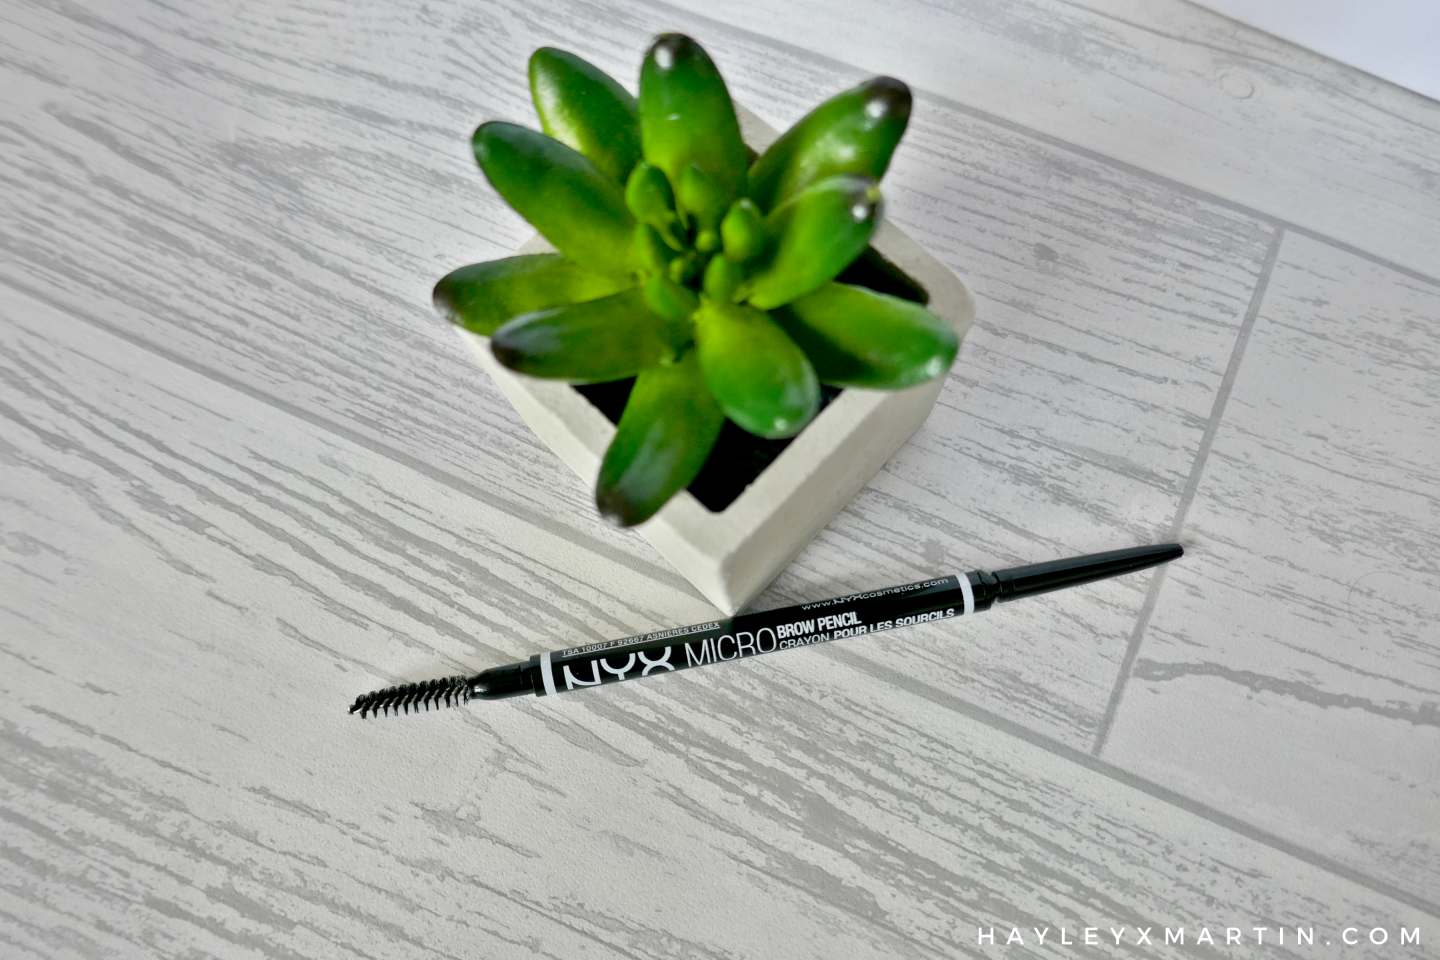 HAYLEYXMARTIN - NYX MICRO BROW PENCIL REVIEW